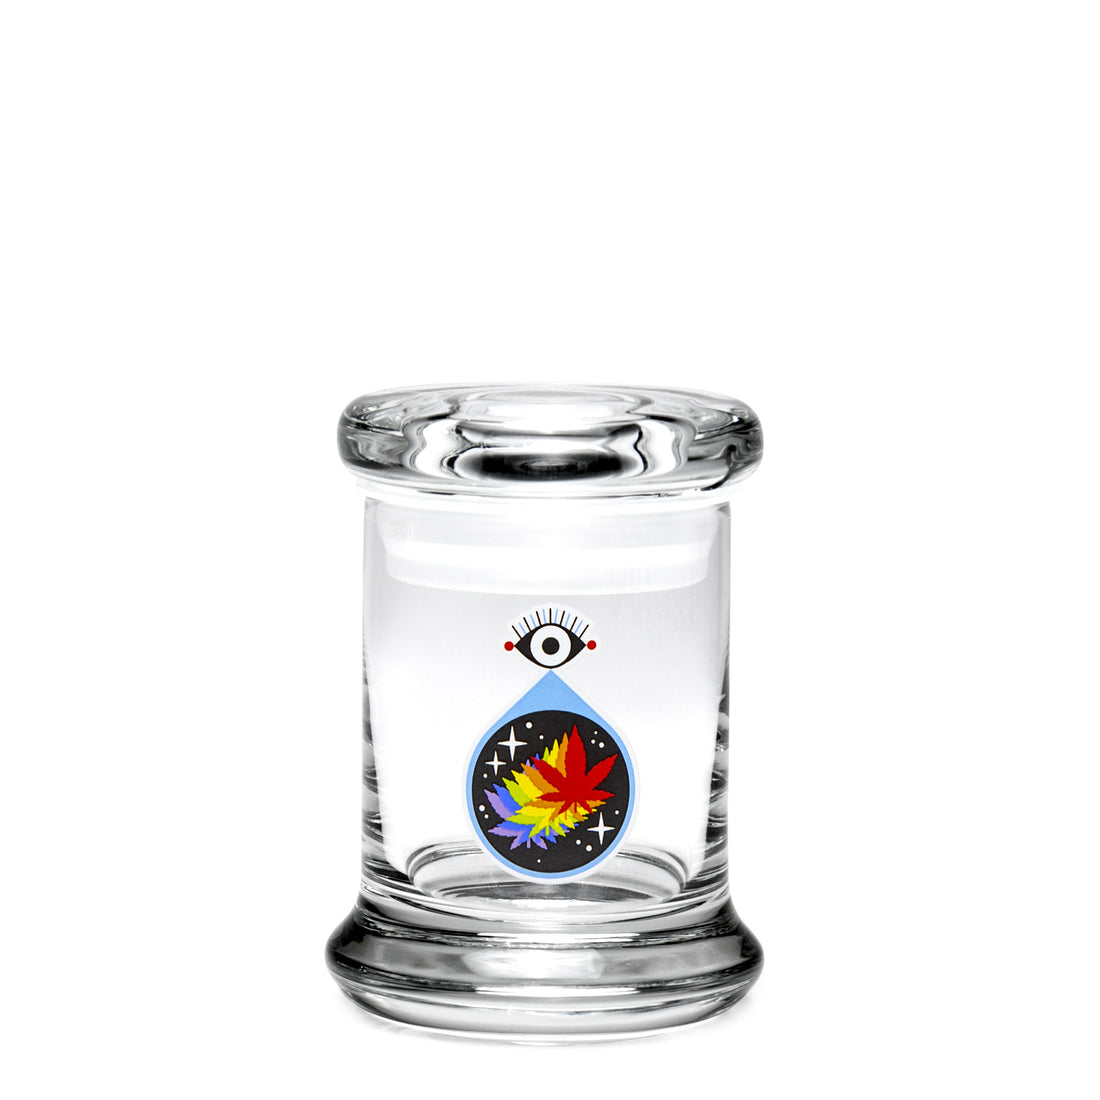 X-Small Pop-Top - All-Seeing Leaf - 420 Science - The most trusted online smoke shop.